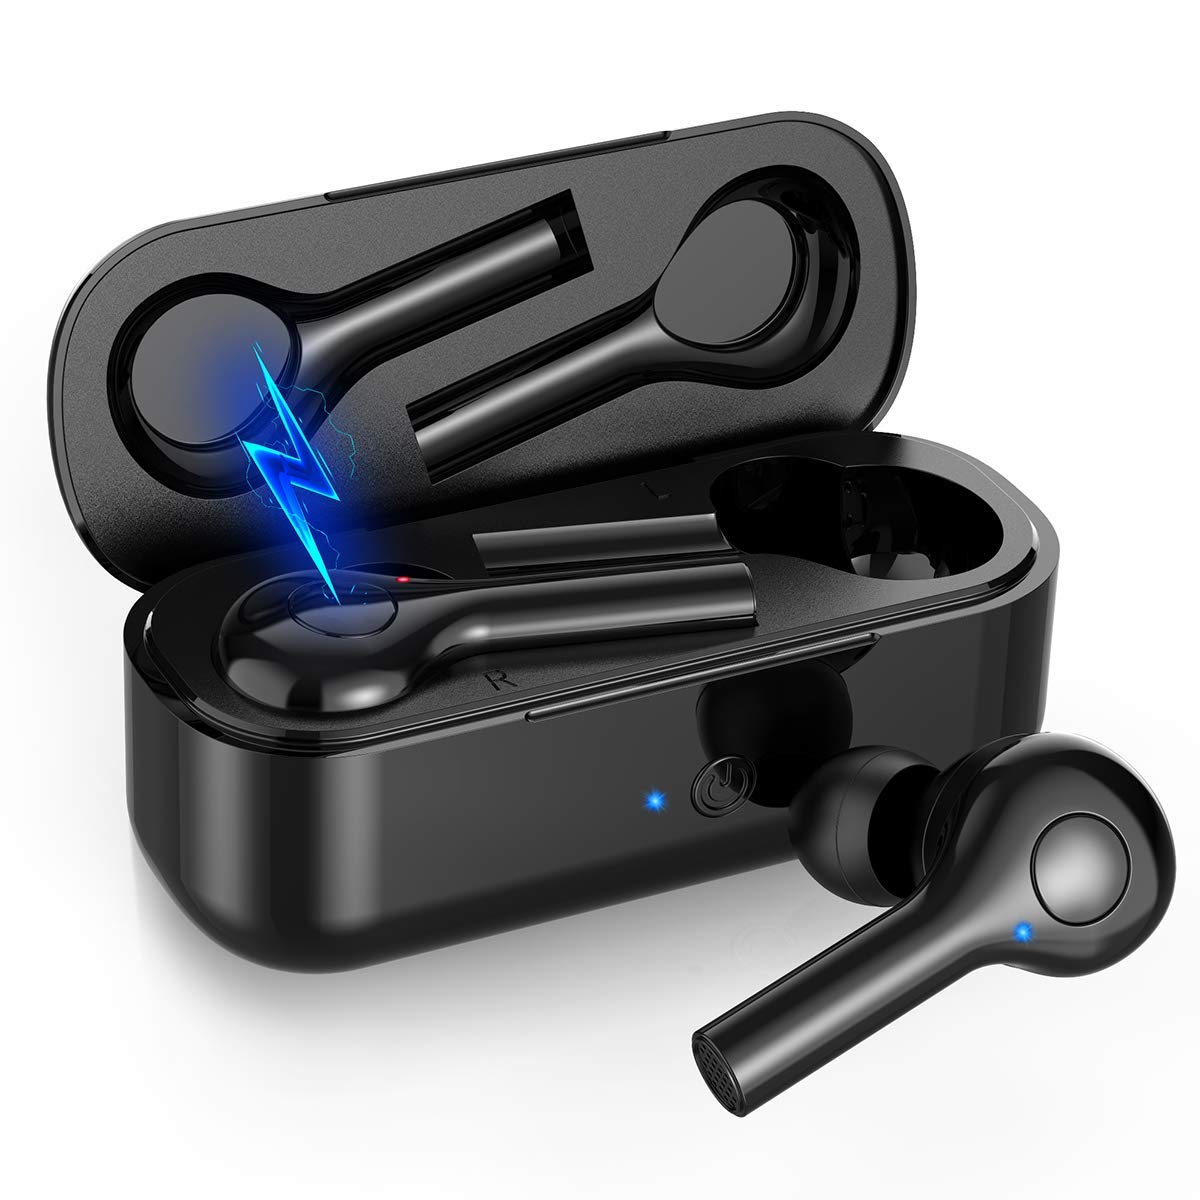 Hexdeer Wireless Earbuds Bluetooth Headphones with Charging Pad Bluetooth V5 In-Ear Running Headphones Sweatproof Ear Pods with Case Wide Compatibility Sport Earbuds with Built-In Mic